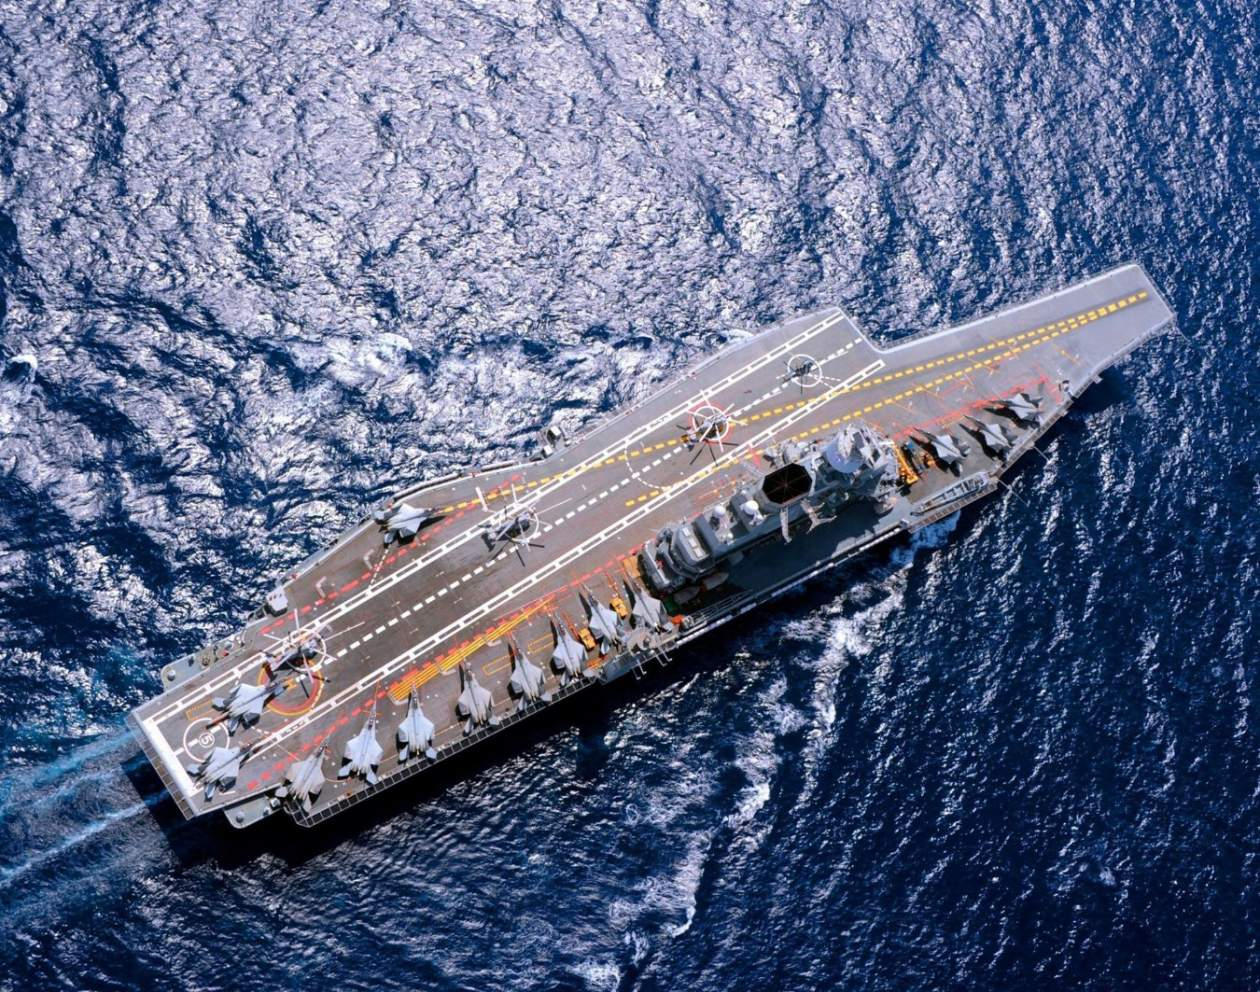 China is Expanding into the Indian Ocean—Here Are Five Things the Indian Navy Can Do About It